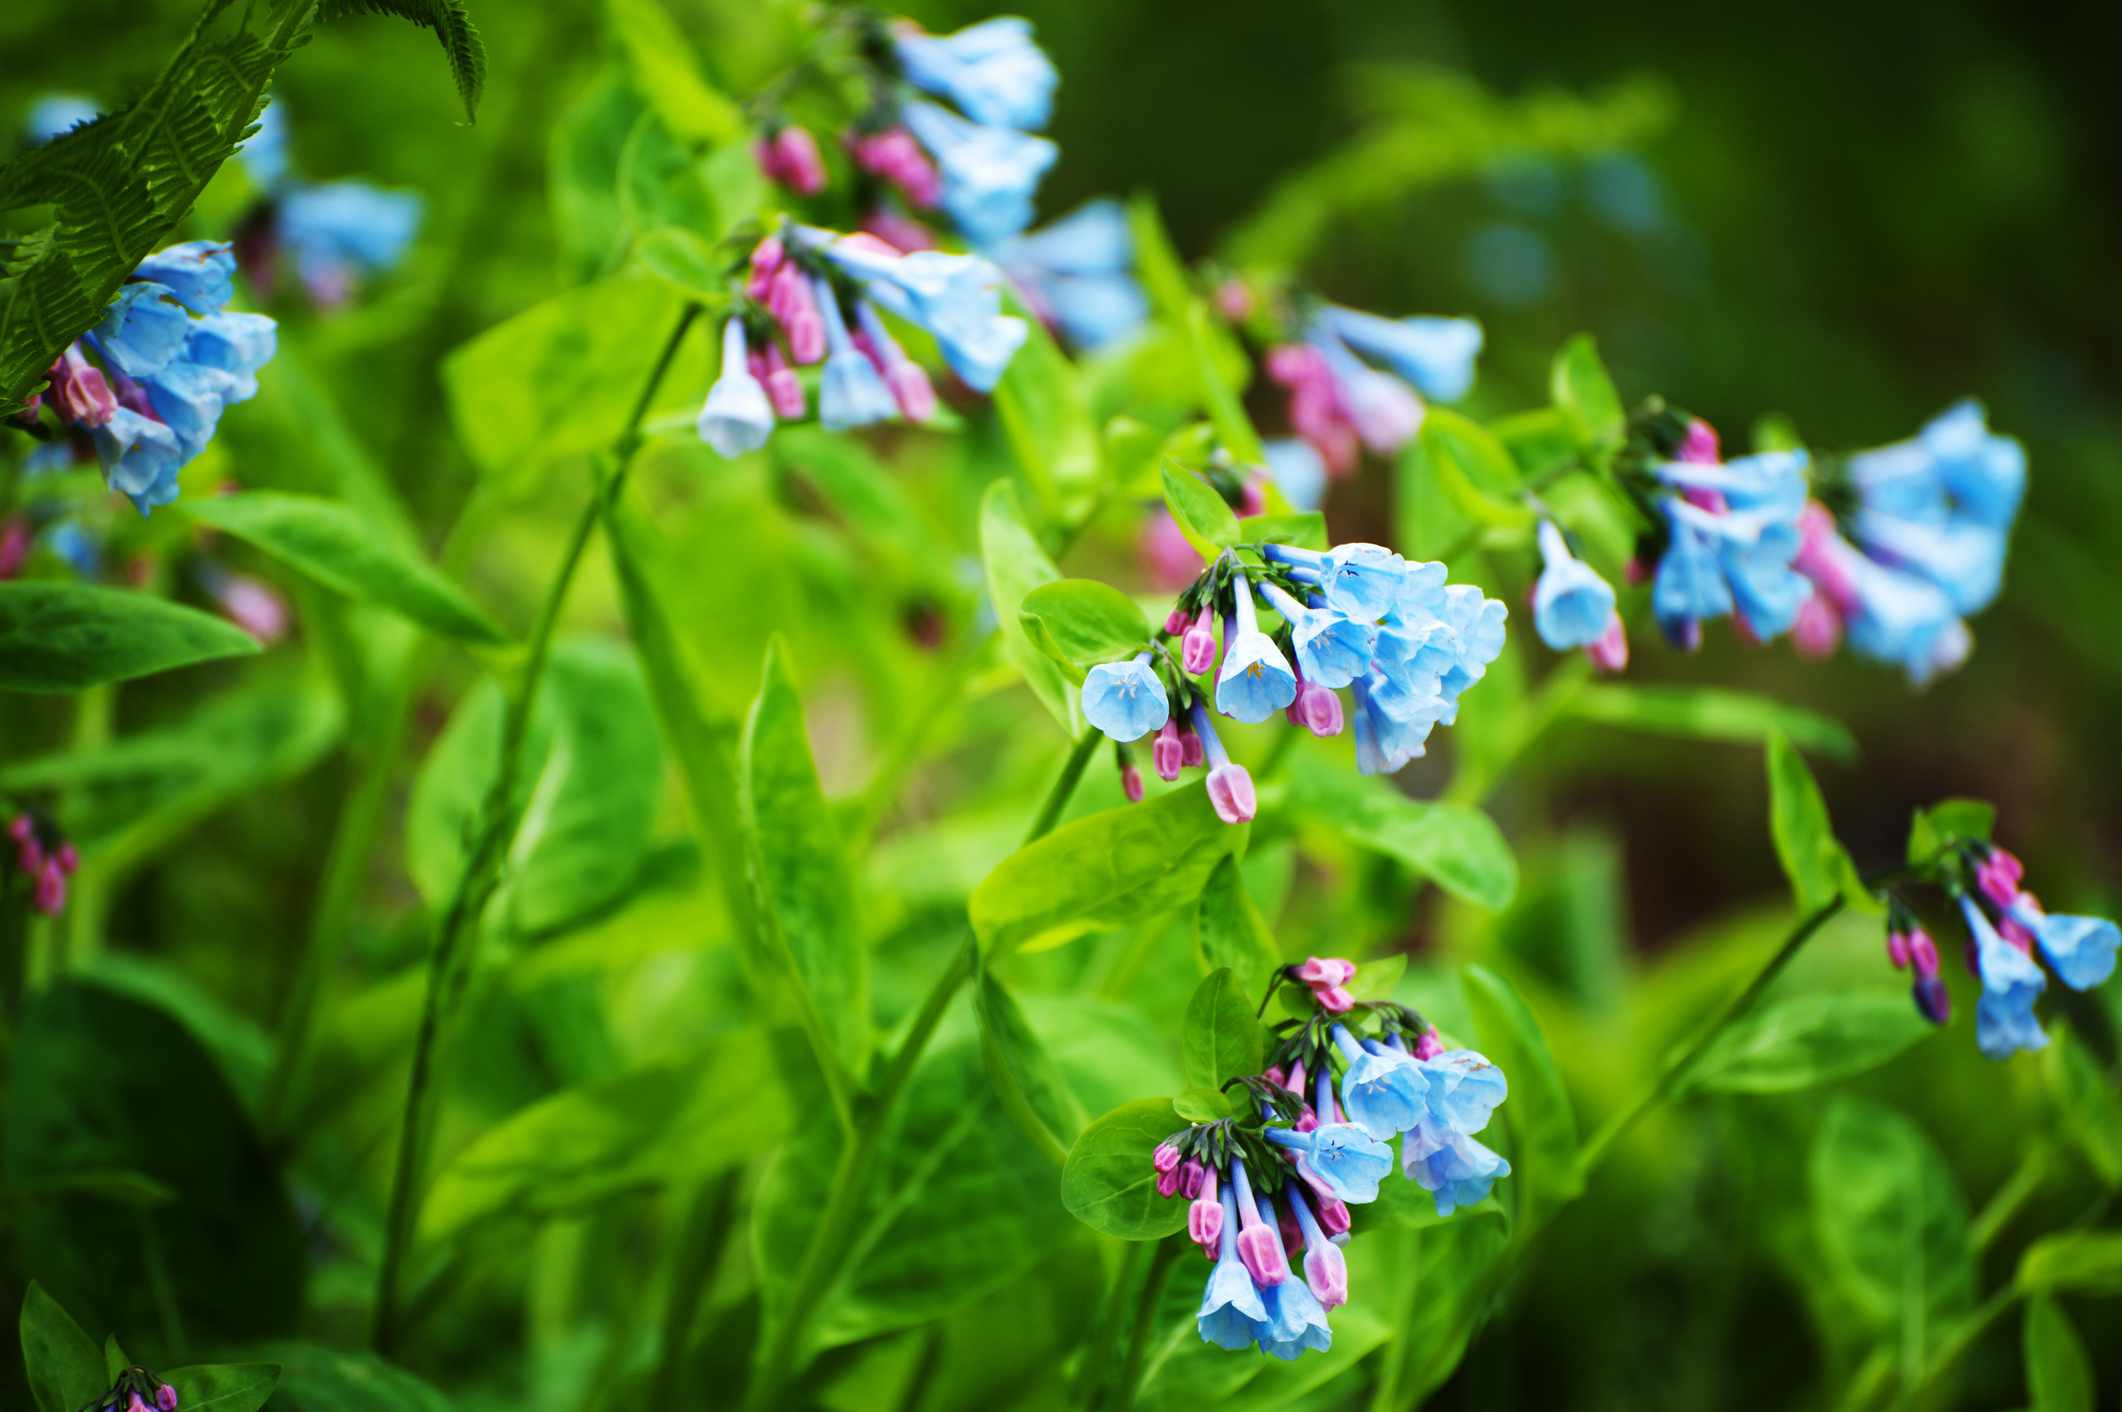 pink and blue Virginia bluebell flowers with green stems and leaves